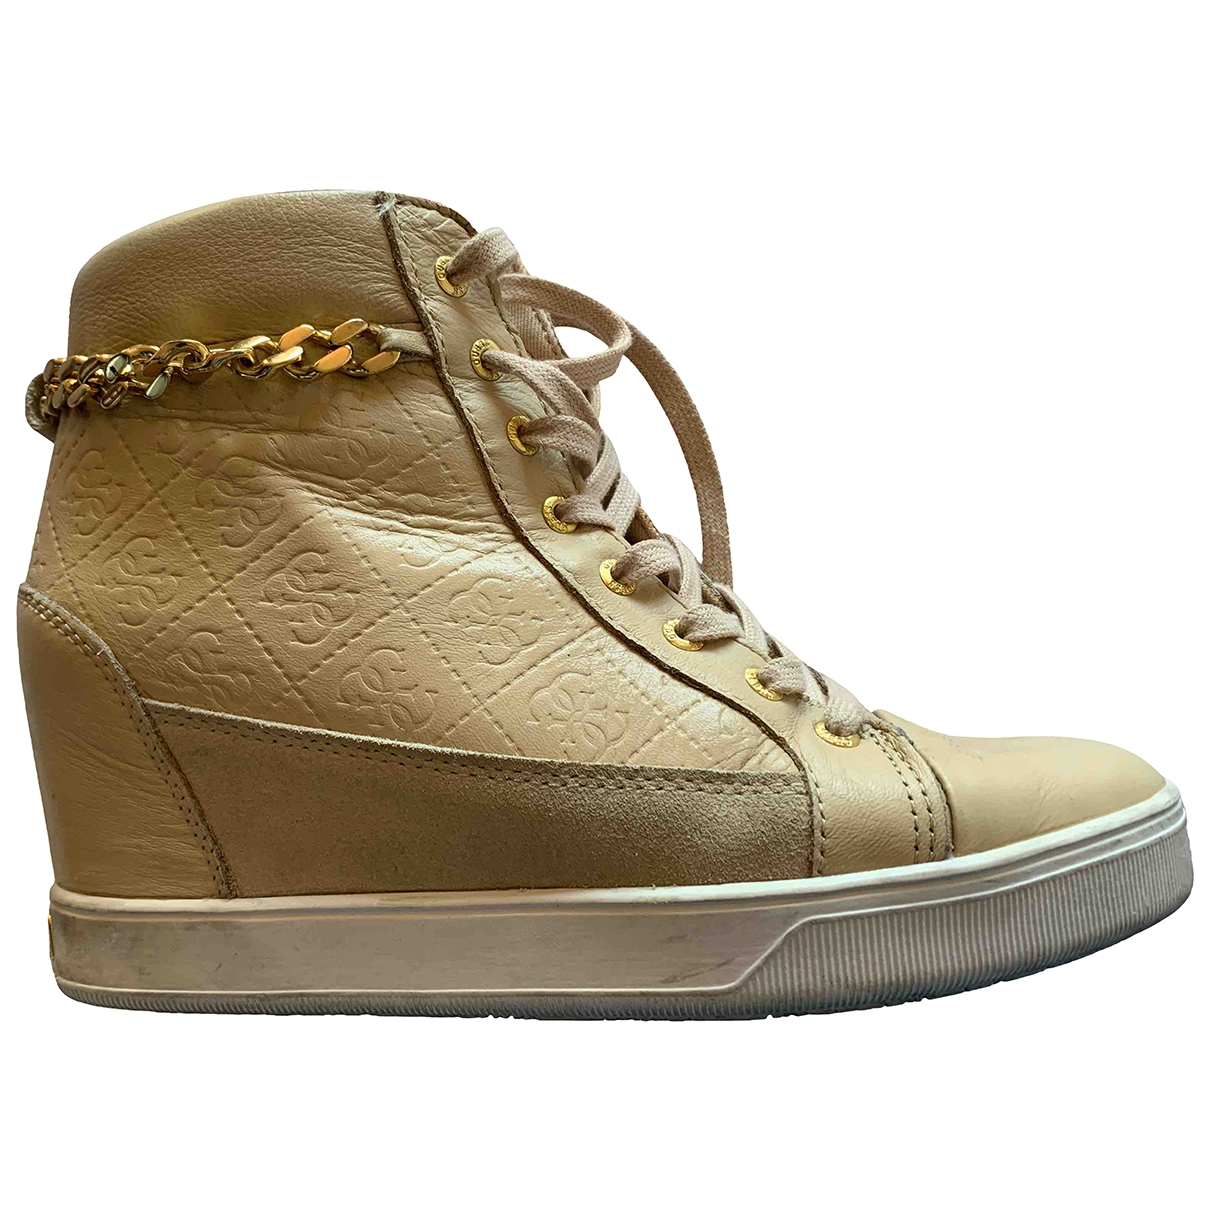 Guess \N Beige Patent leather Trainers for Women 39 EU